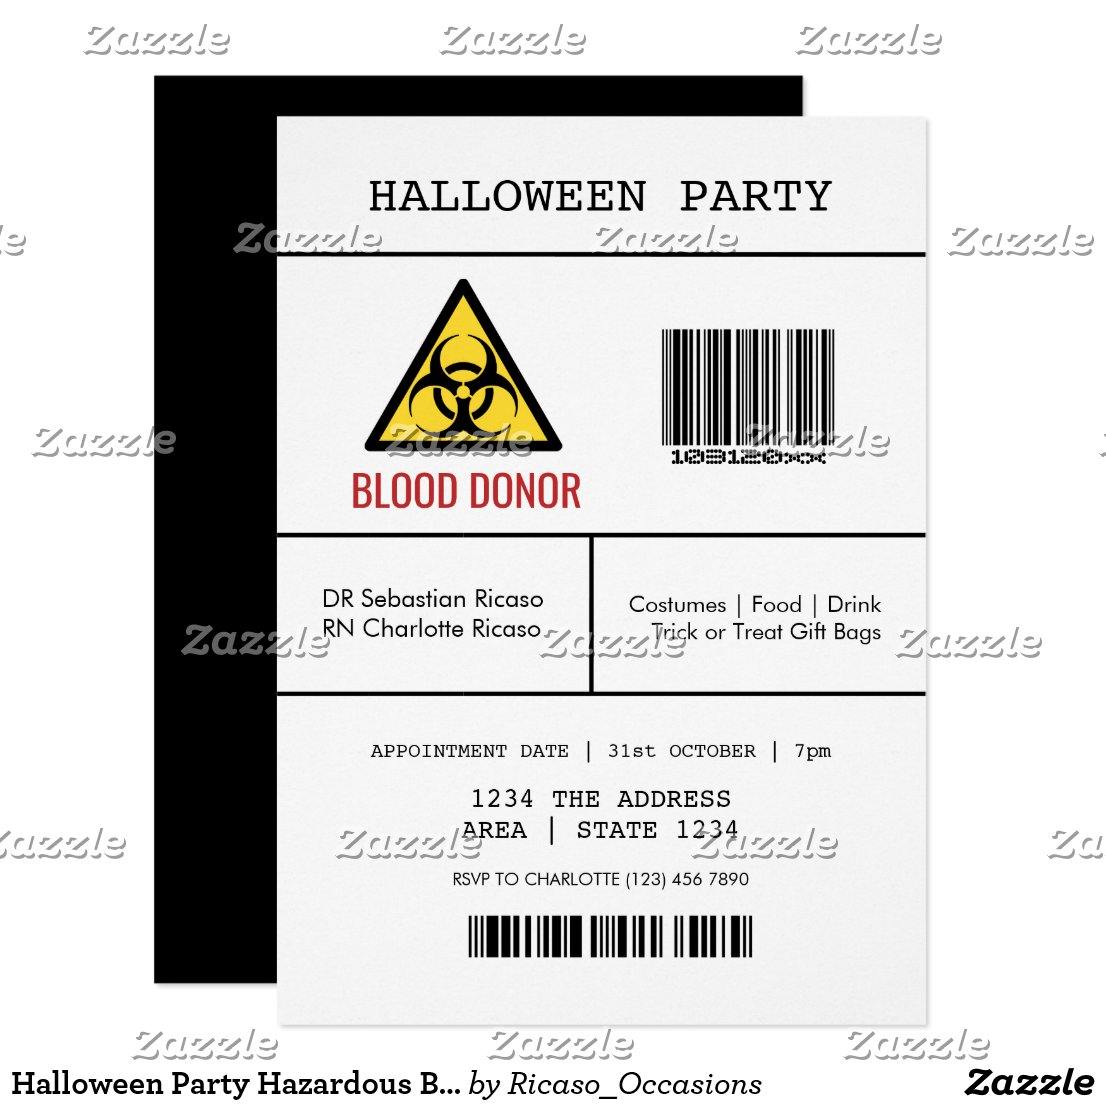 Halloween Party Hazardous Blood Donor Invitation